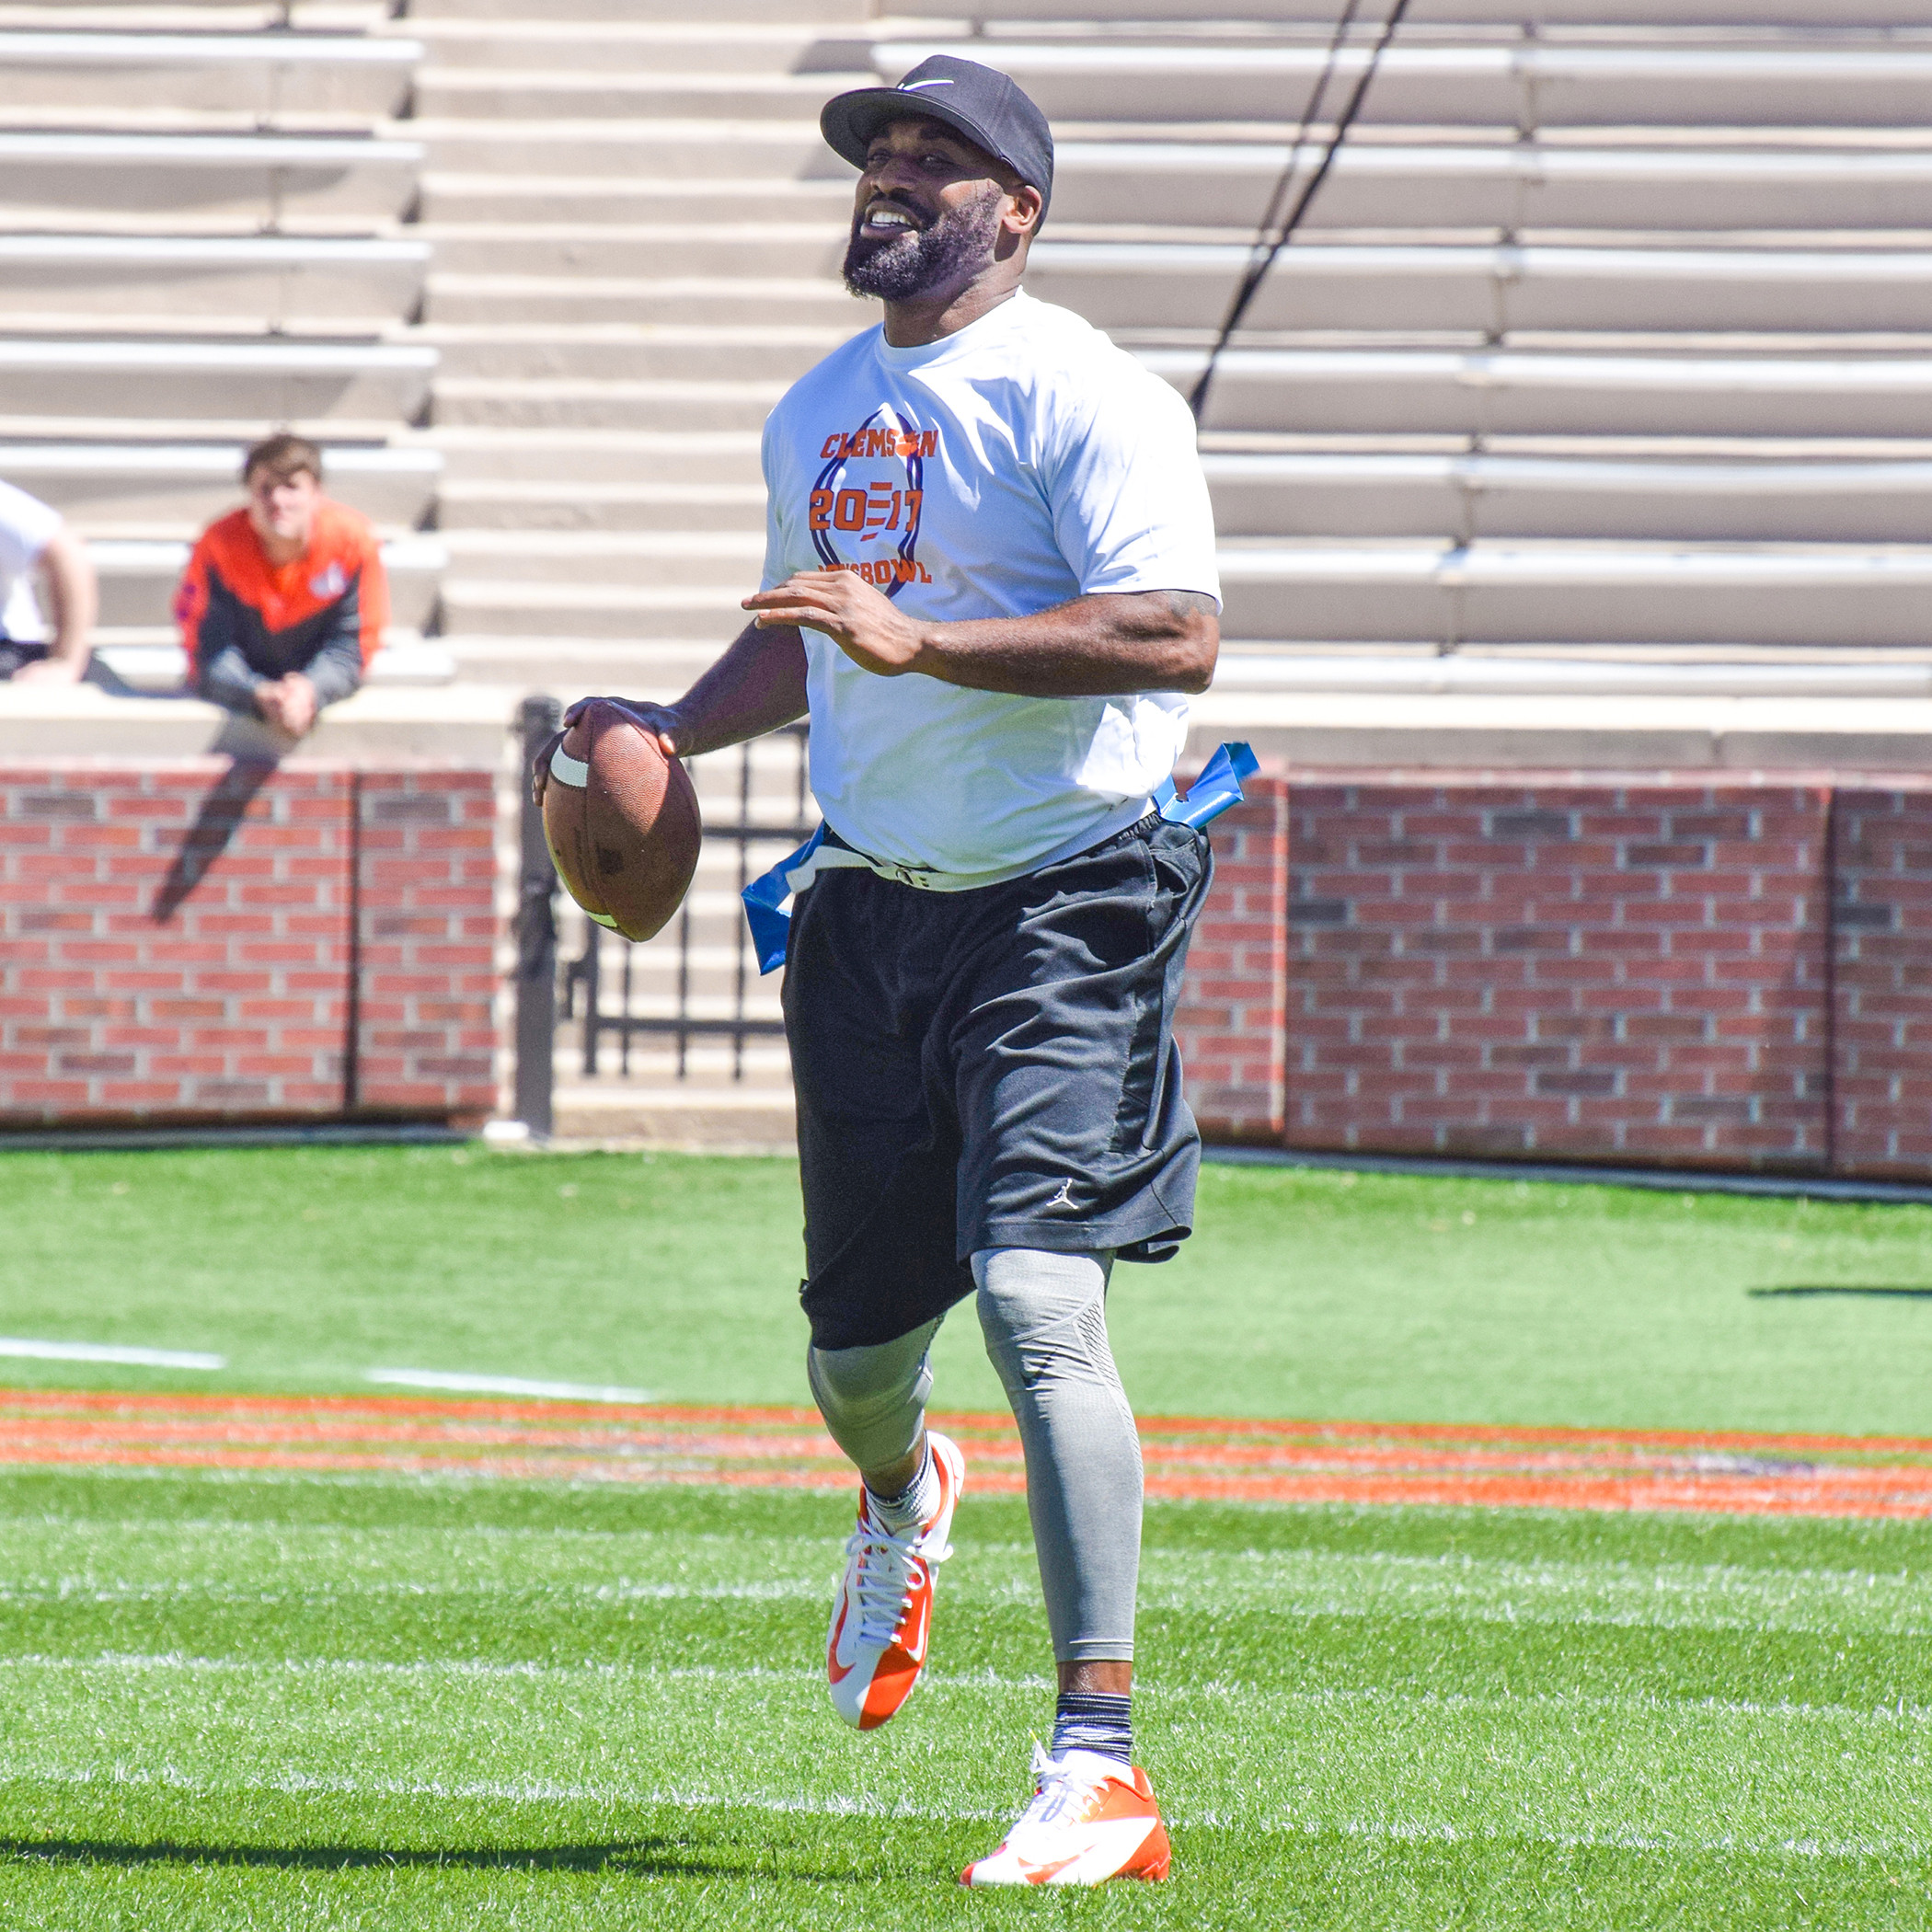 Sapp Leads White Team to Sons Bowl Victory